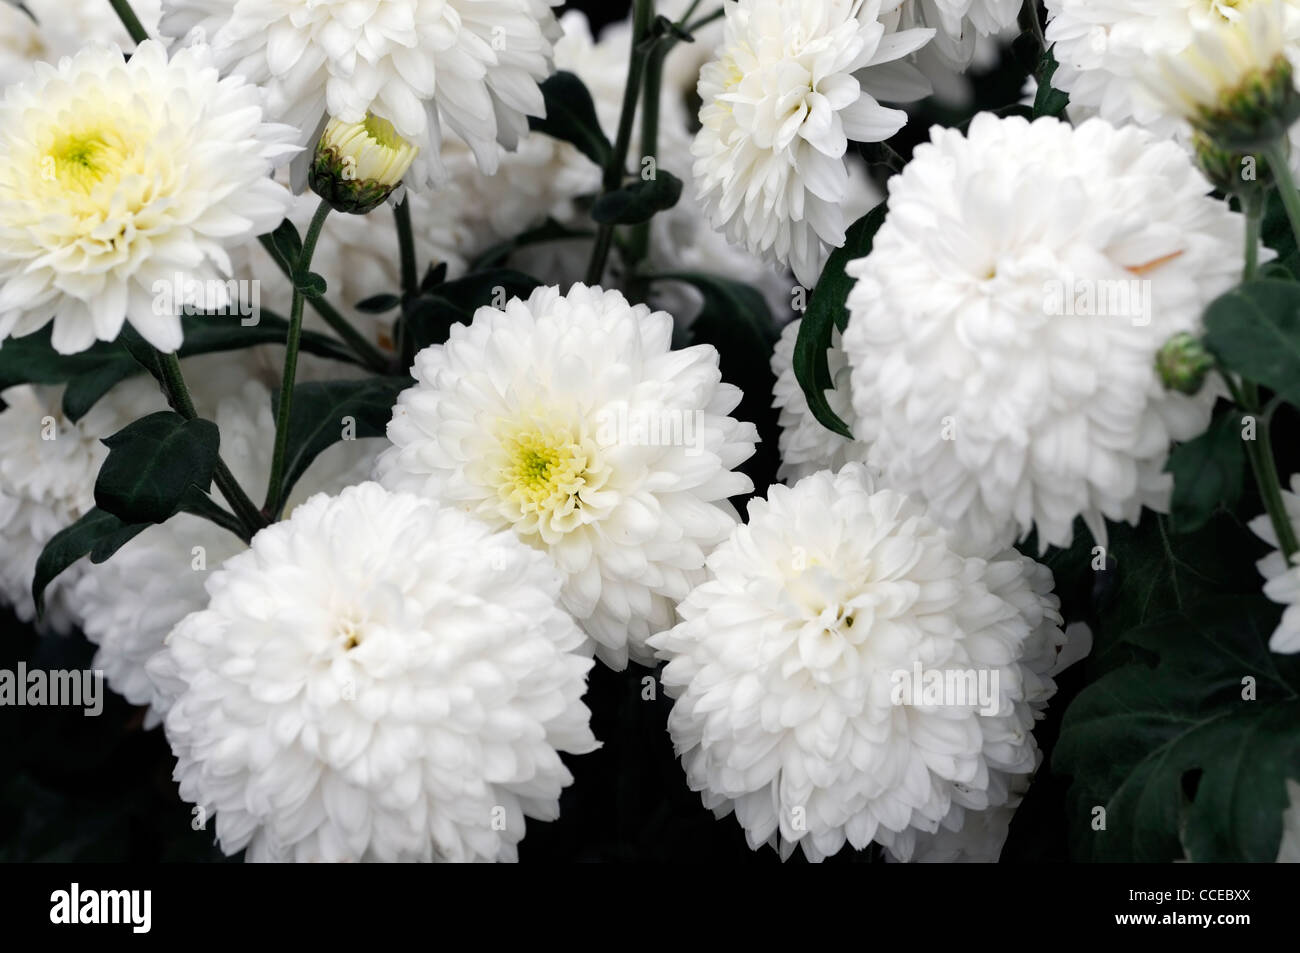 White chrysanthemum flowers stock photos white chrysanthemum chrysanthemum asterlee white flowers blooms blossoms half hardy perennial herbaceous plant flower bloom blossom stock mightylinksfo